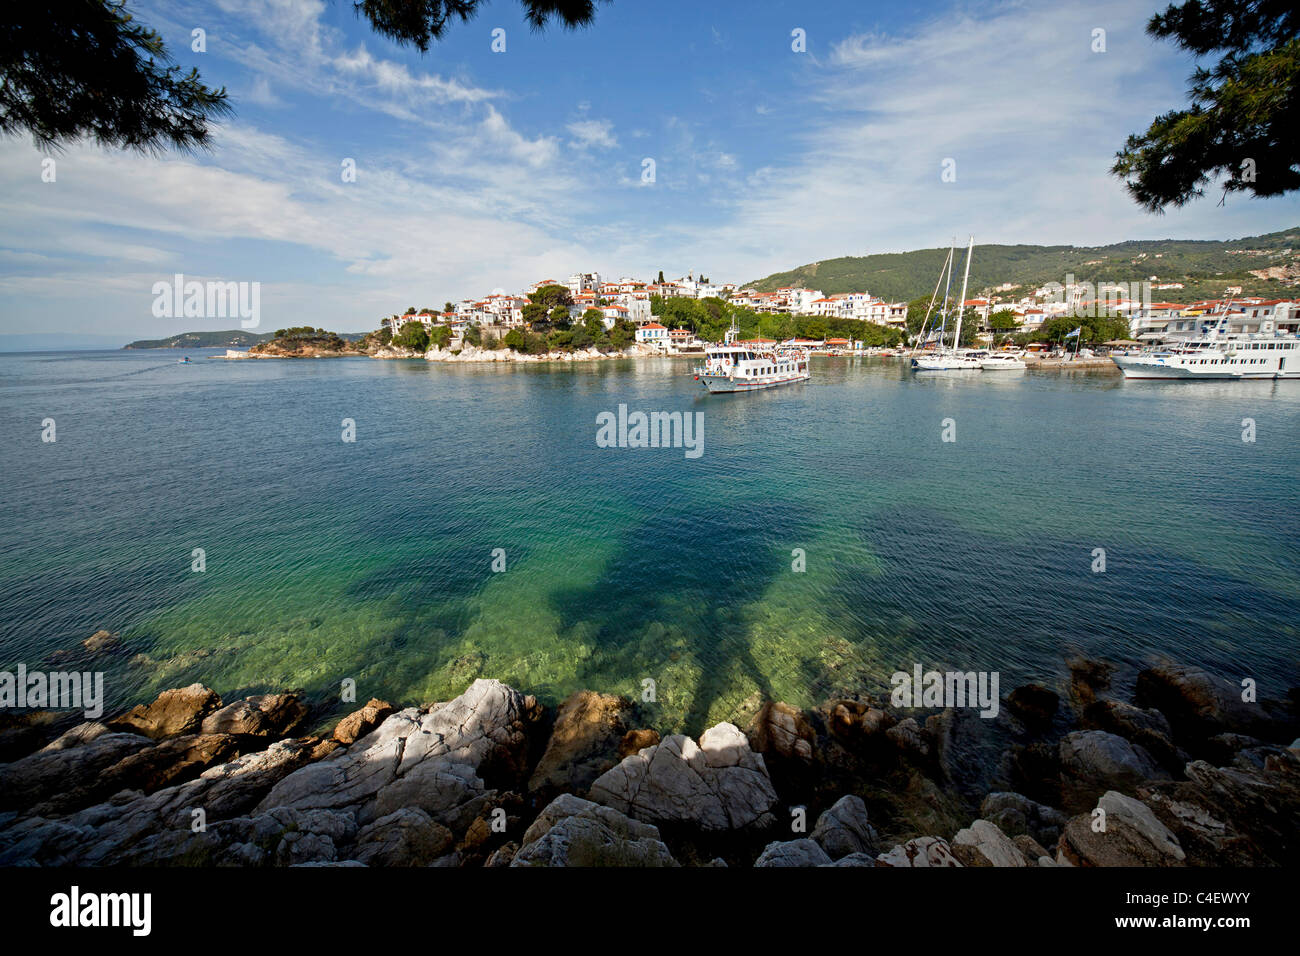 boats at the old harbour of Skiathos Town on Skiathos Island, Northern Sporades, Greece Stock Photo